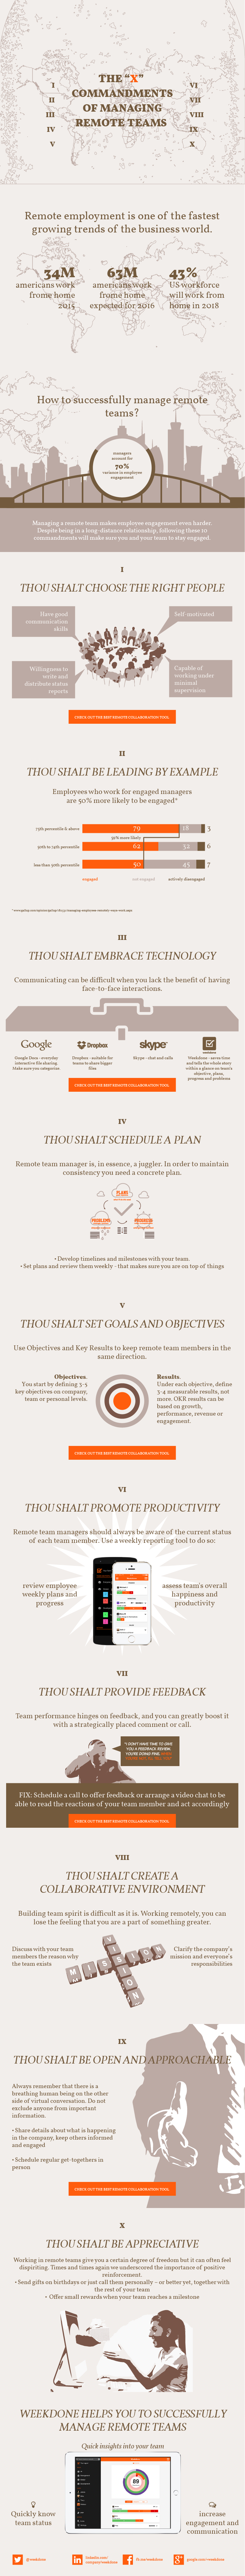 The Ten Commandments of Managing Remote Teams - infographic